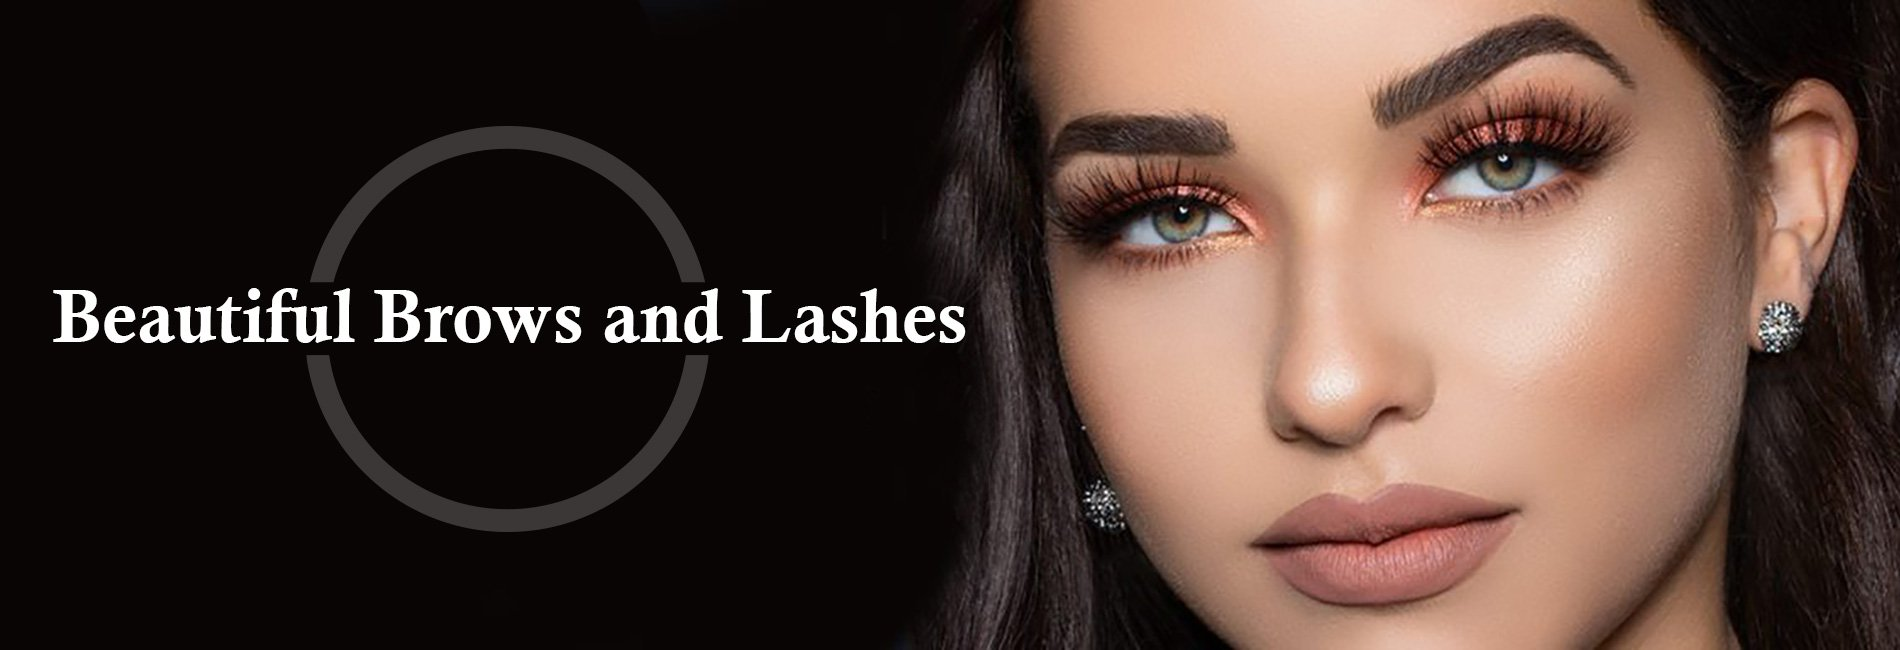 Beautiful Brows and Lashes 2